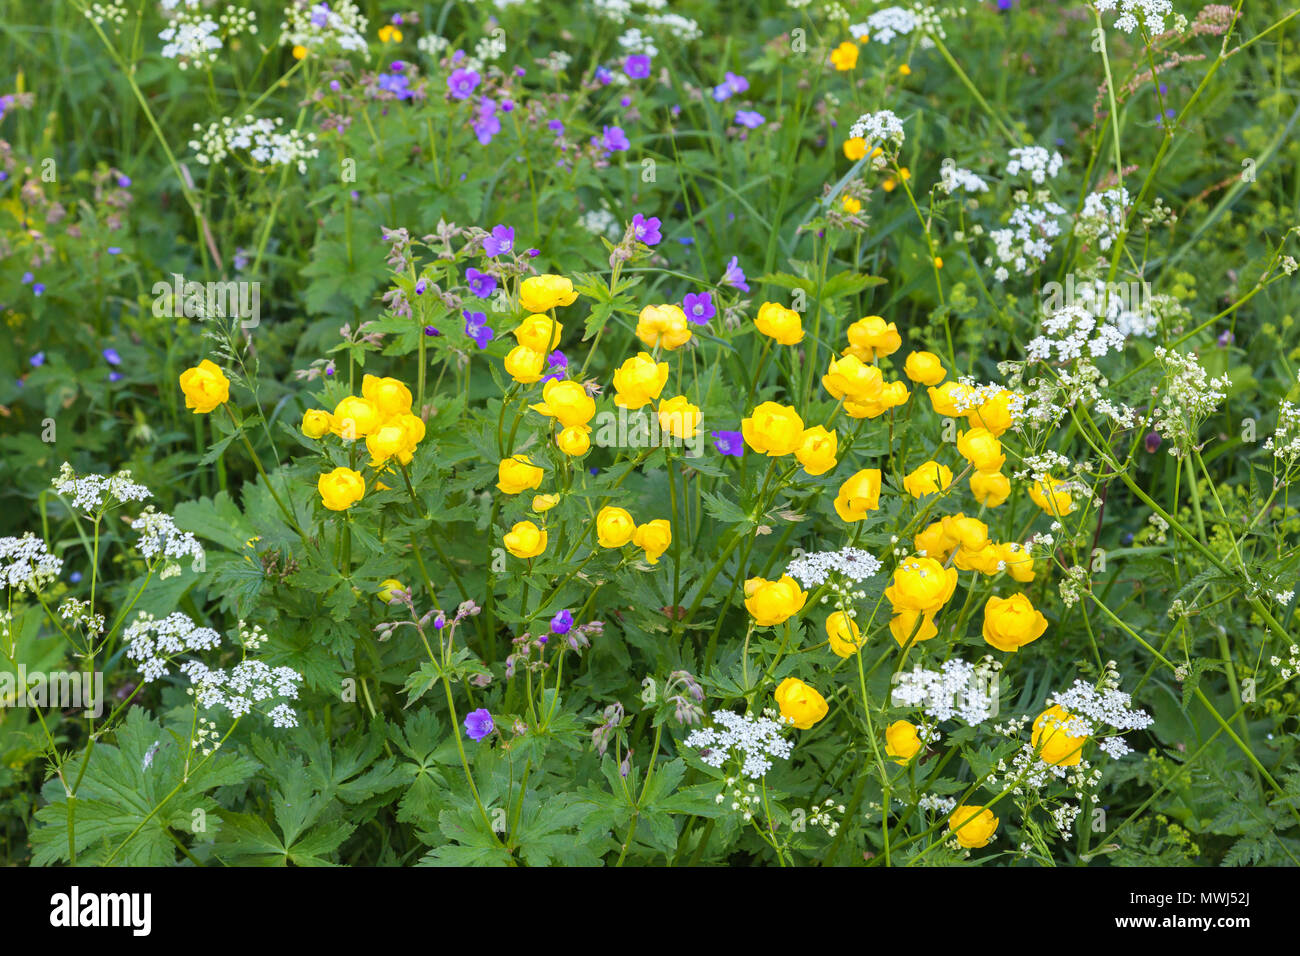 Summer flower on a meadow - Stock Image